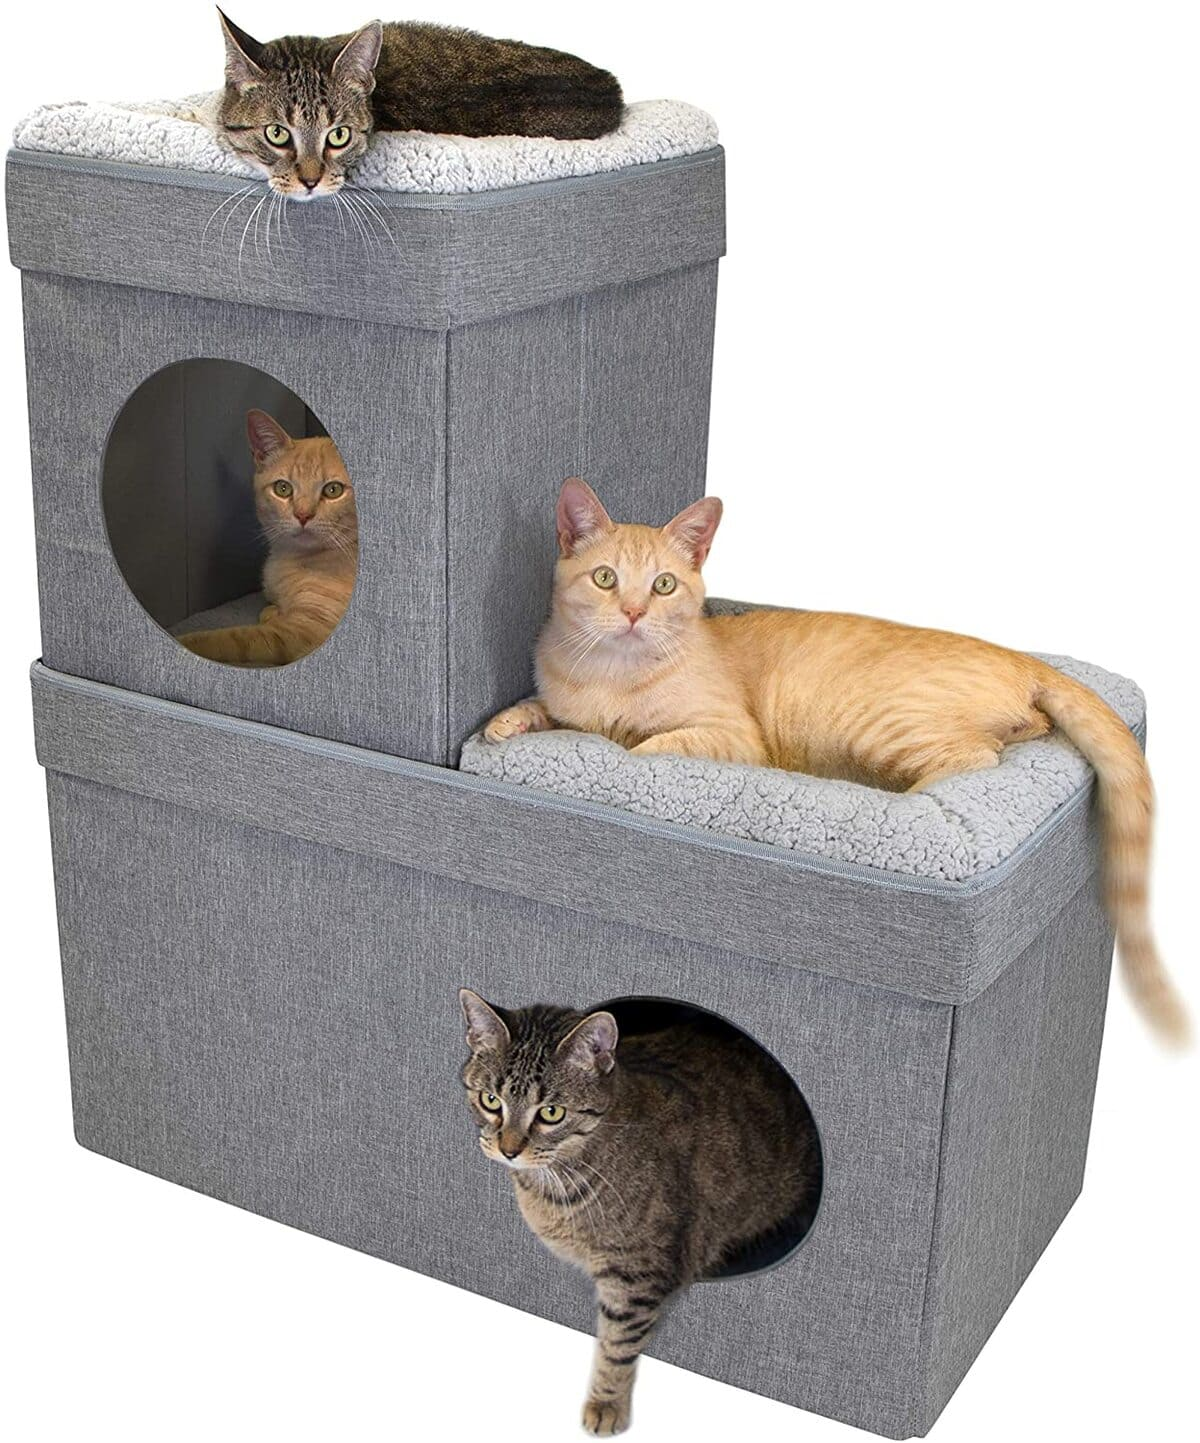 pet furniture 10 - 18 amazing pet furniture ideas that are perfect solutions for small spaces